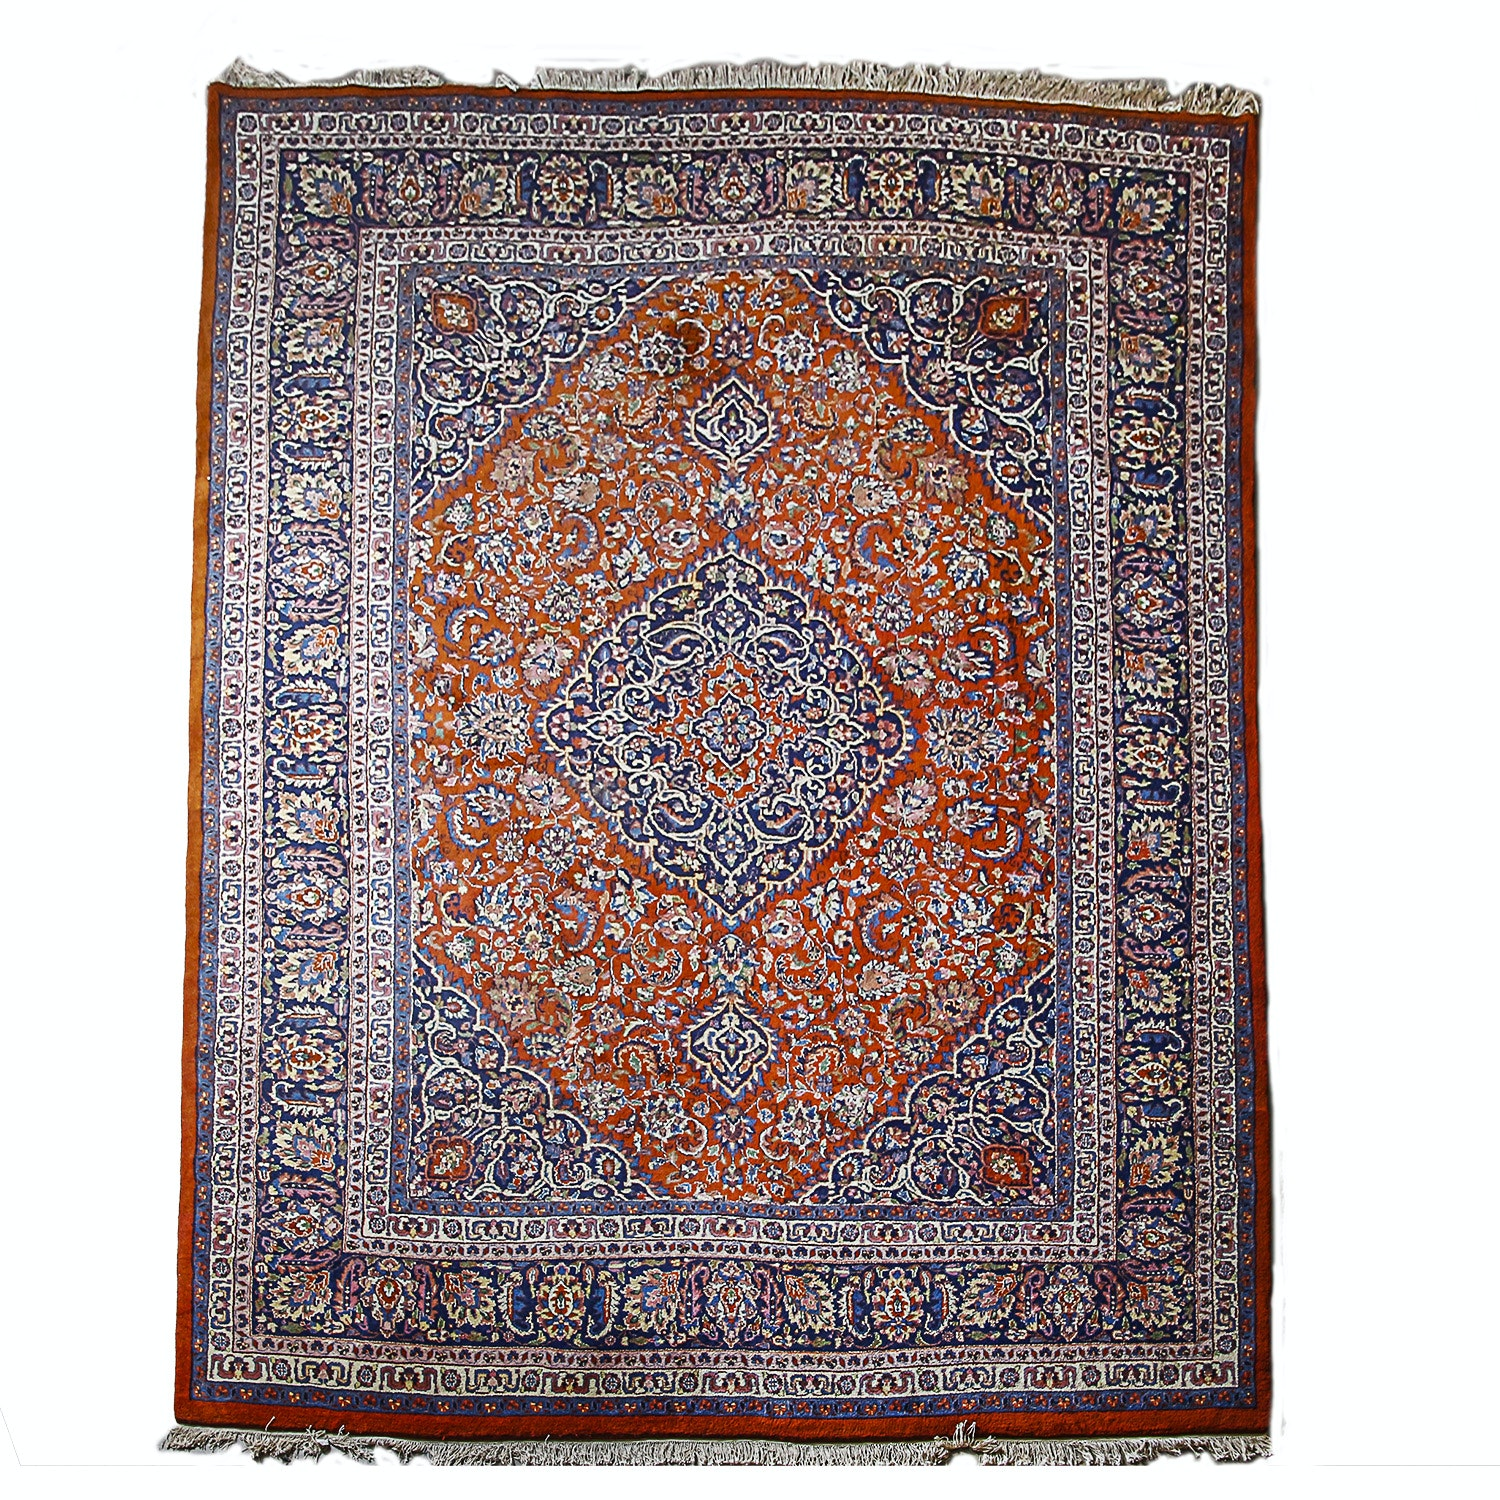 Finely Hand-Knotted Indo-Persian Kashan Wool Area Rug